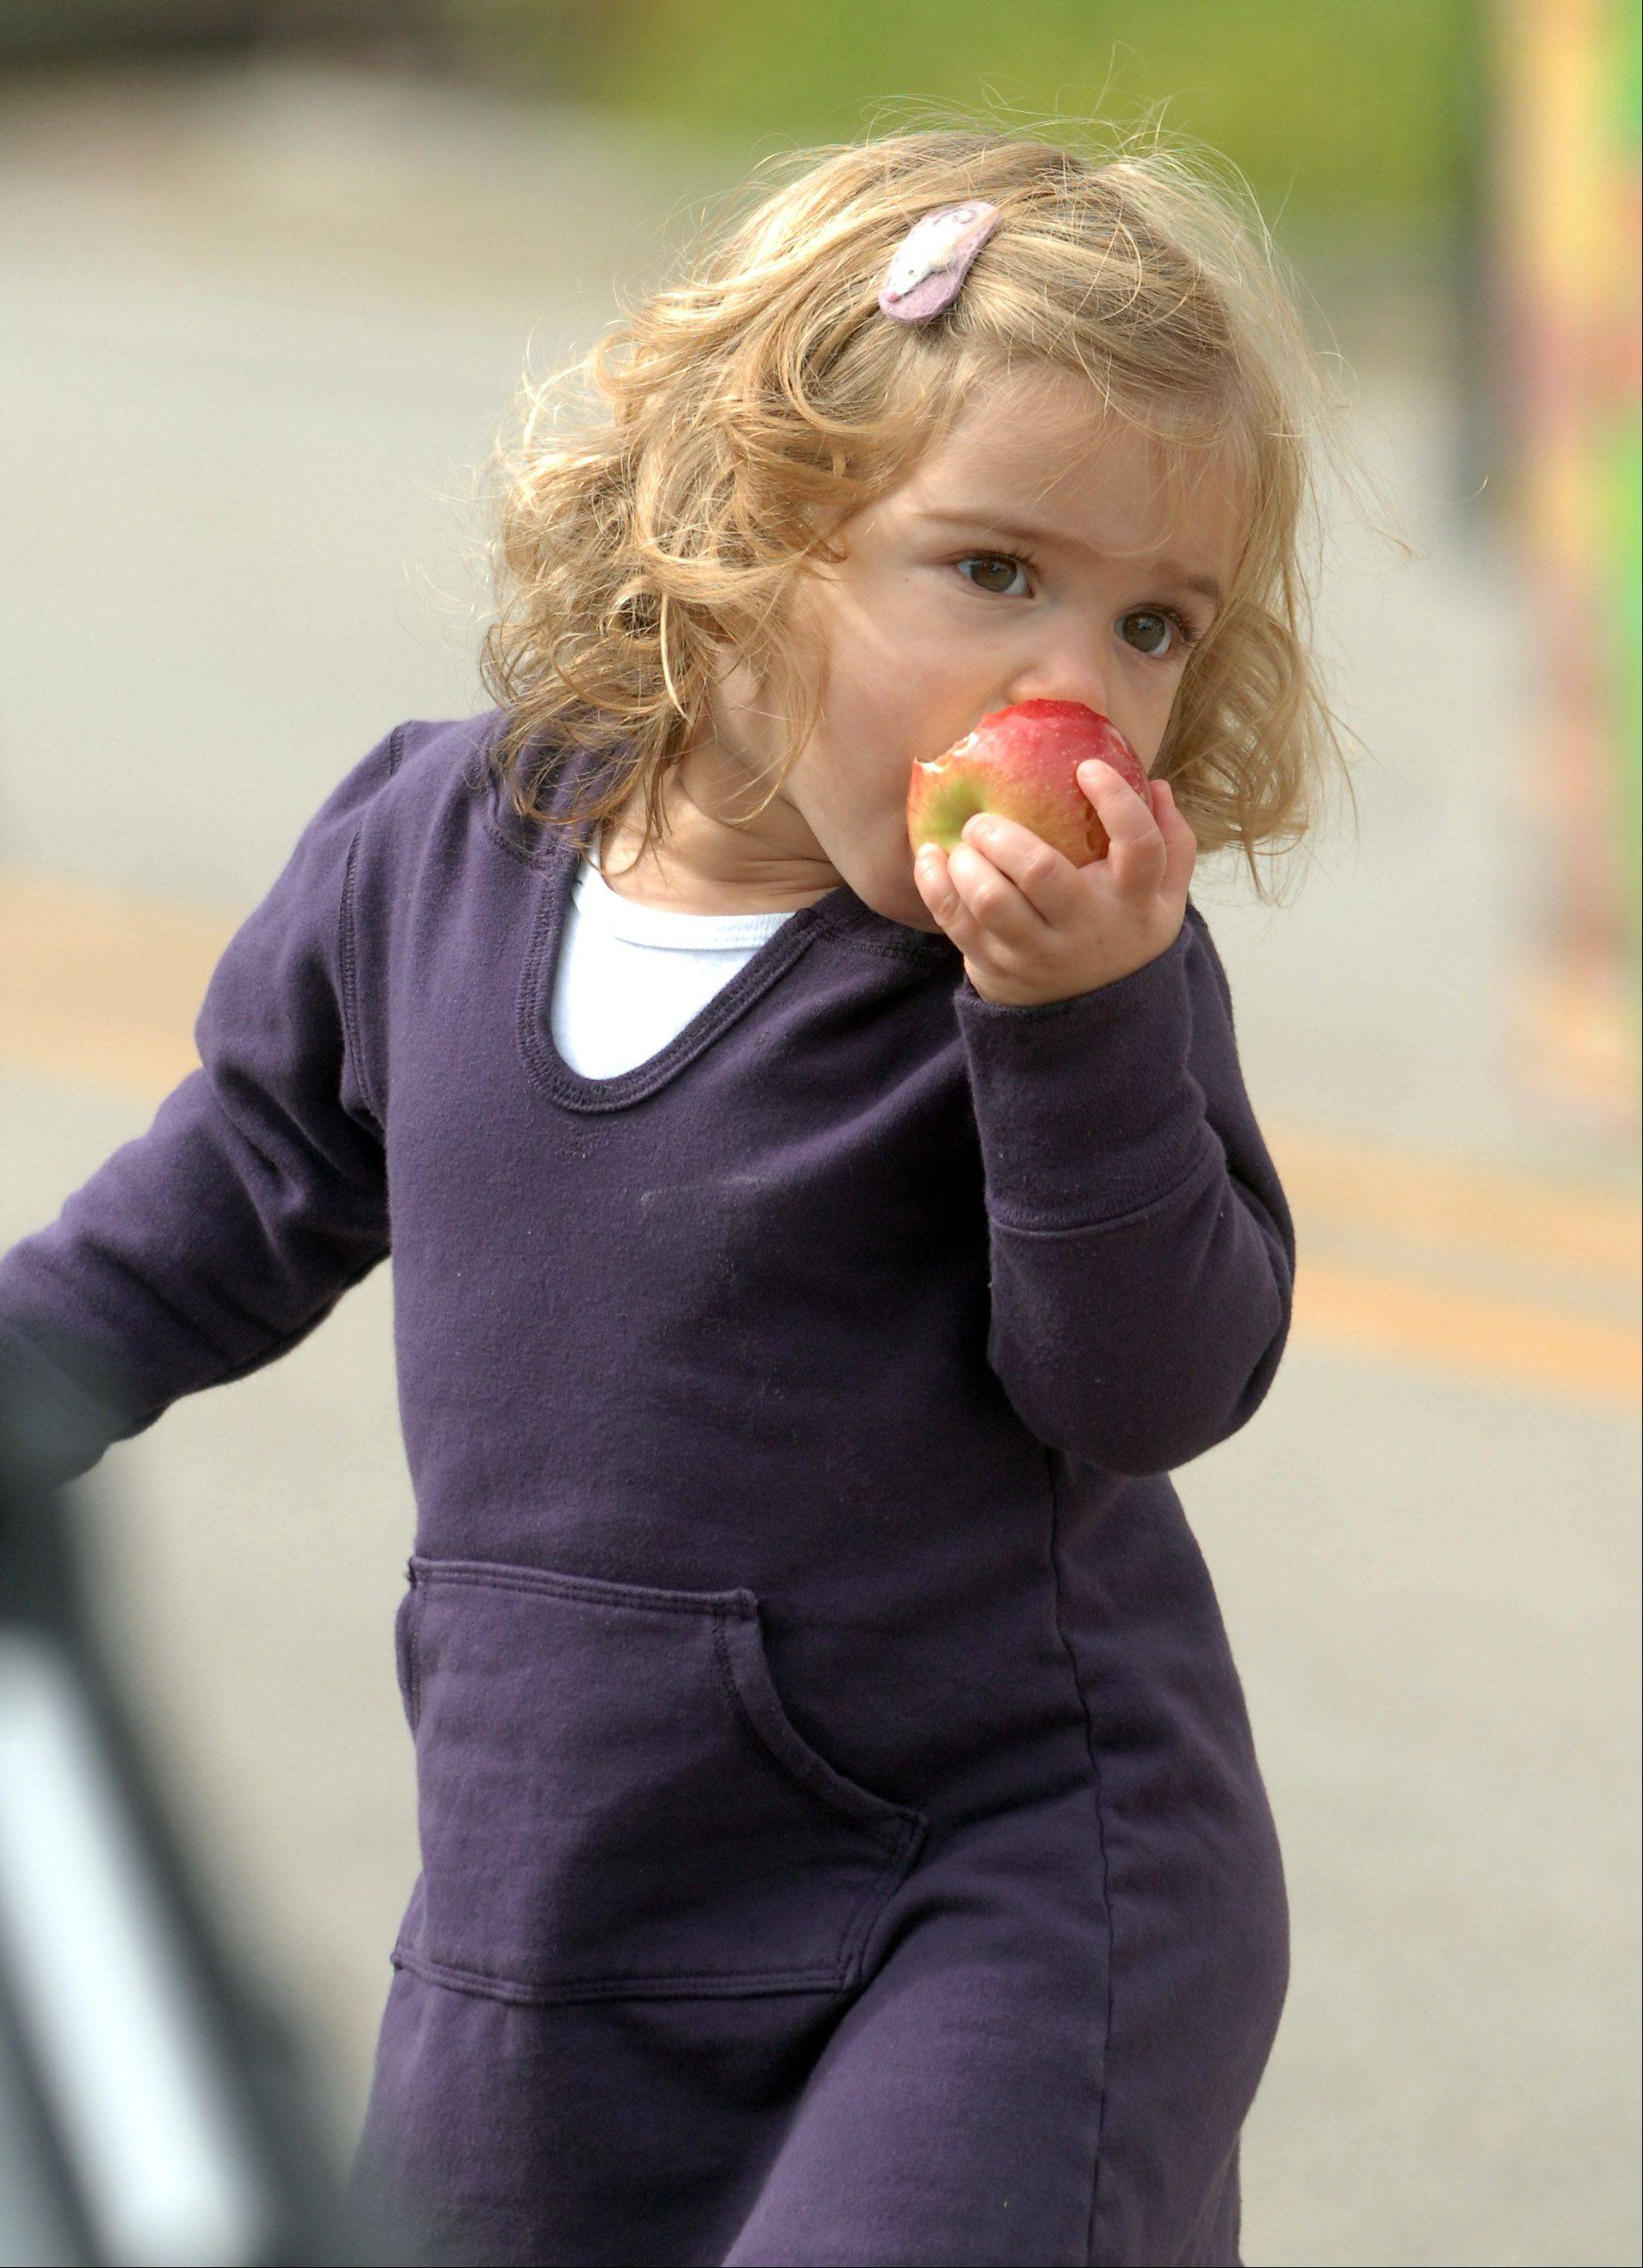 Gemma Marinello, 21 months of Chicago, enjoys an apple her mother, Erica Marinello, bought for her Friday.